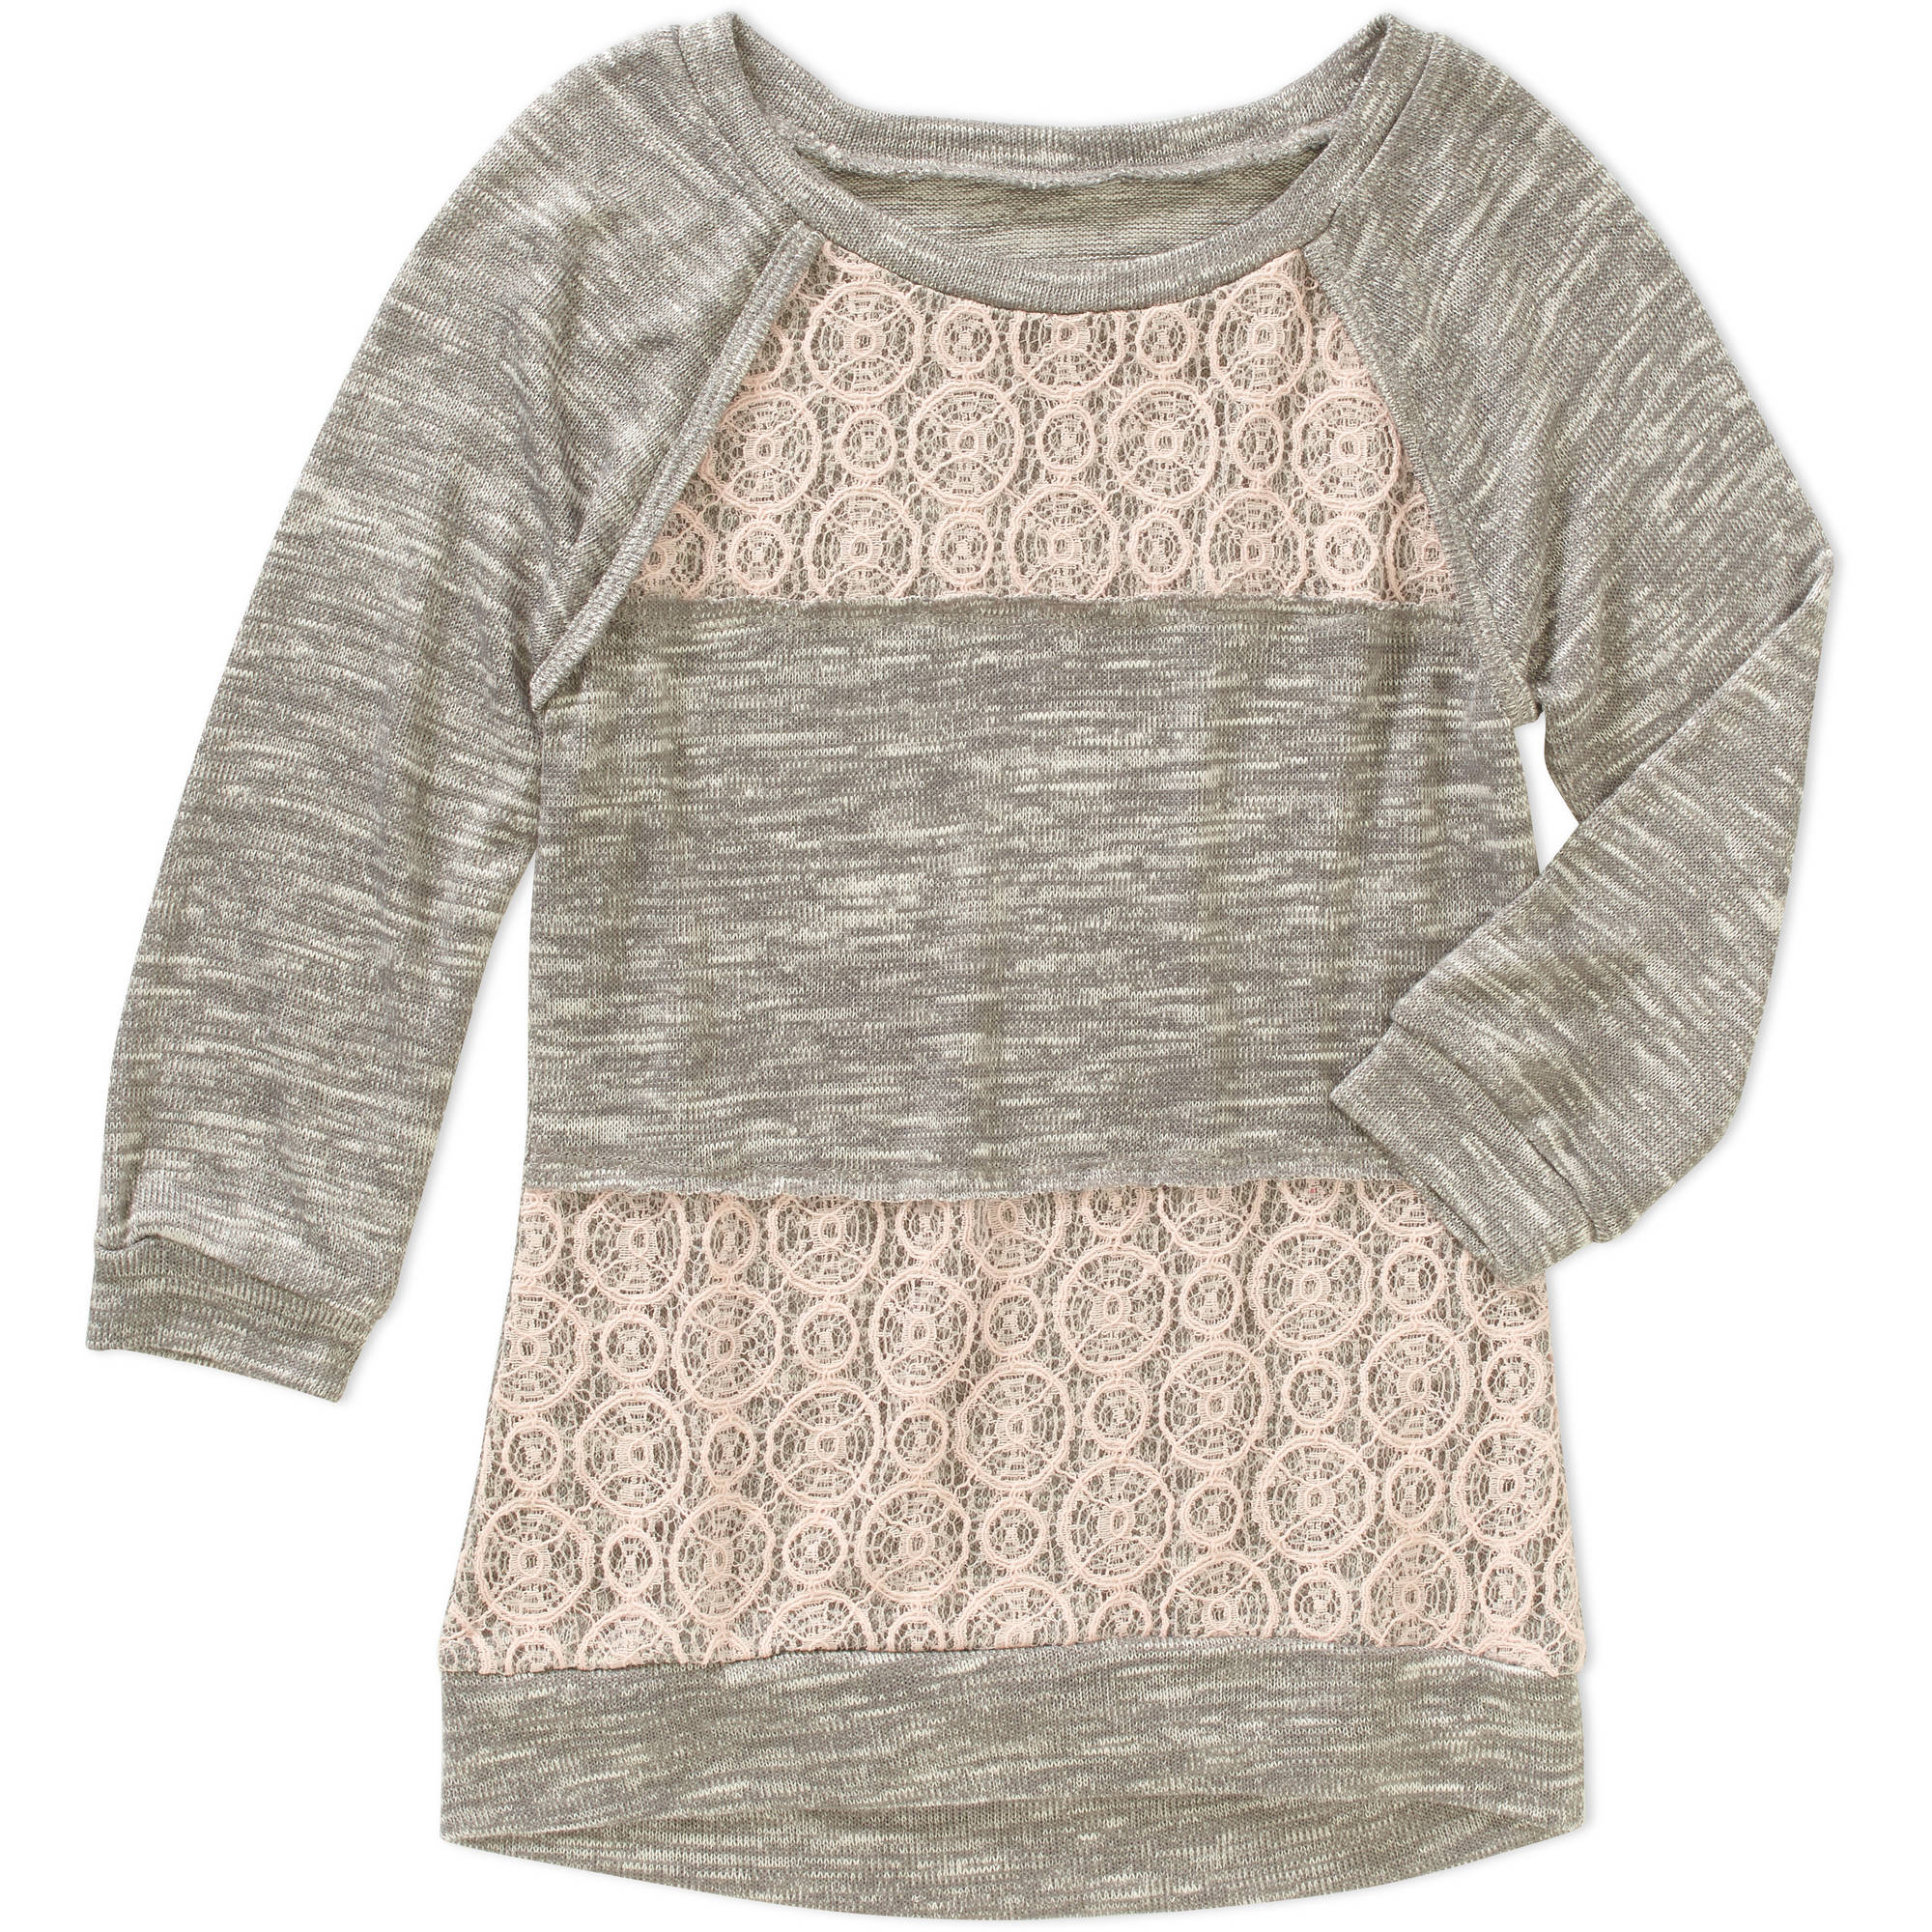 Miss Chievous Girls' 3/4 Raglan Sleeve Crochet Panel Tunic